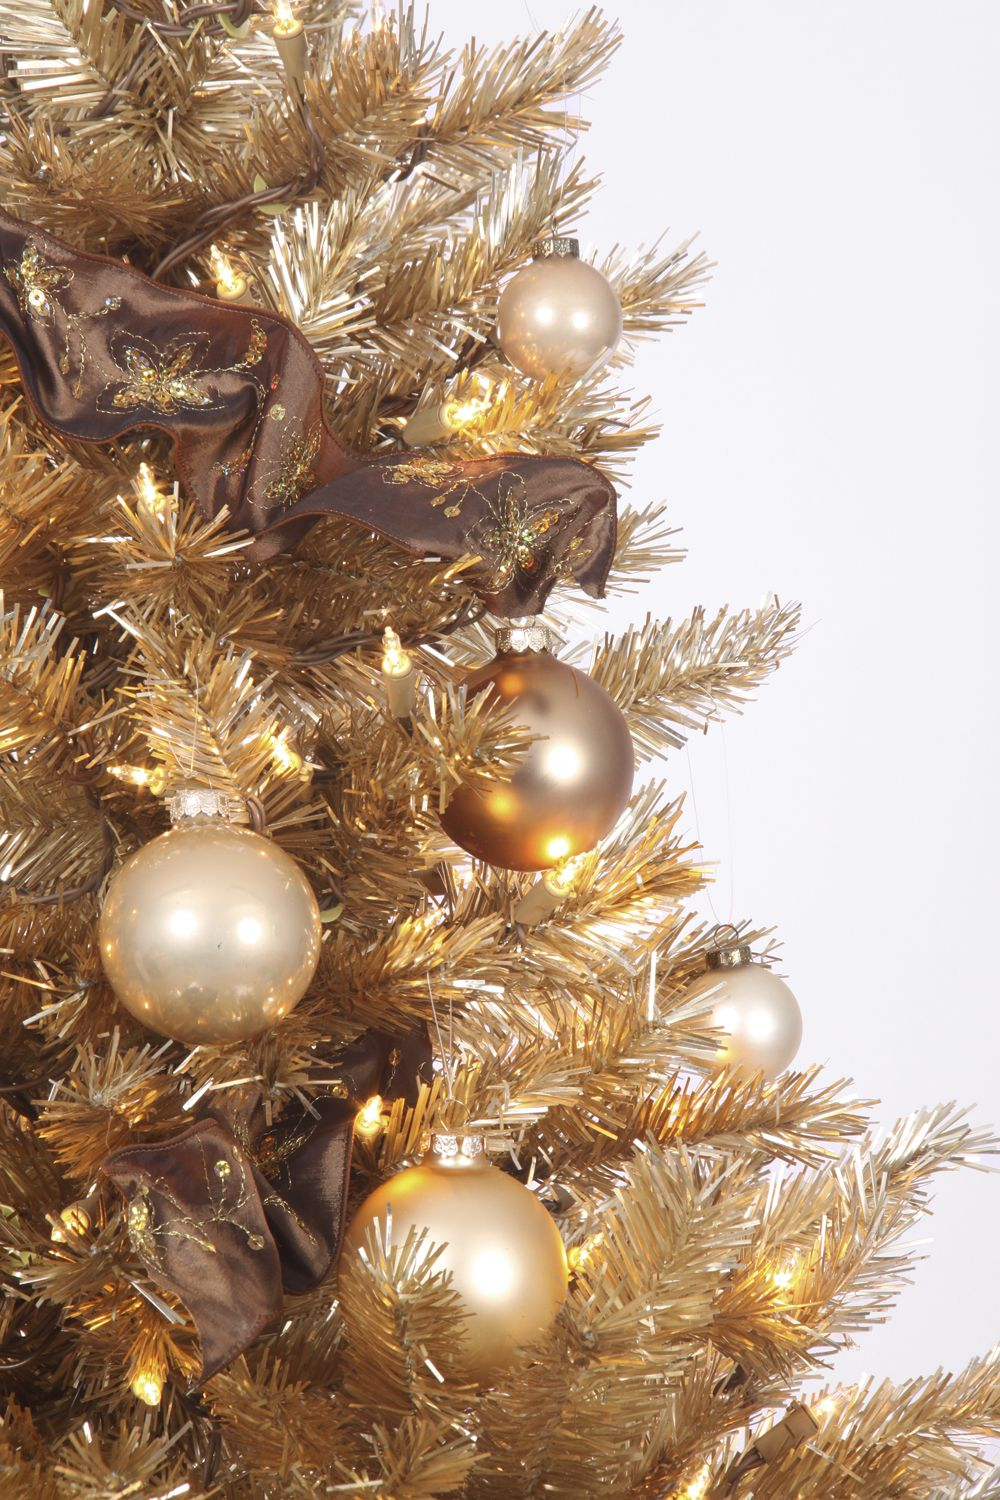 The Toasted Champagne Gold Christmas Tree Features Tips And Needles Fully Hinged Branches That